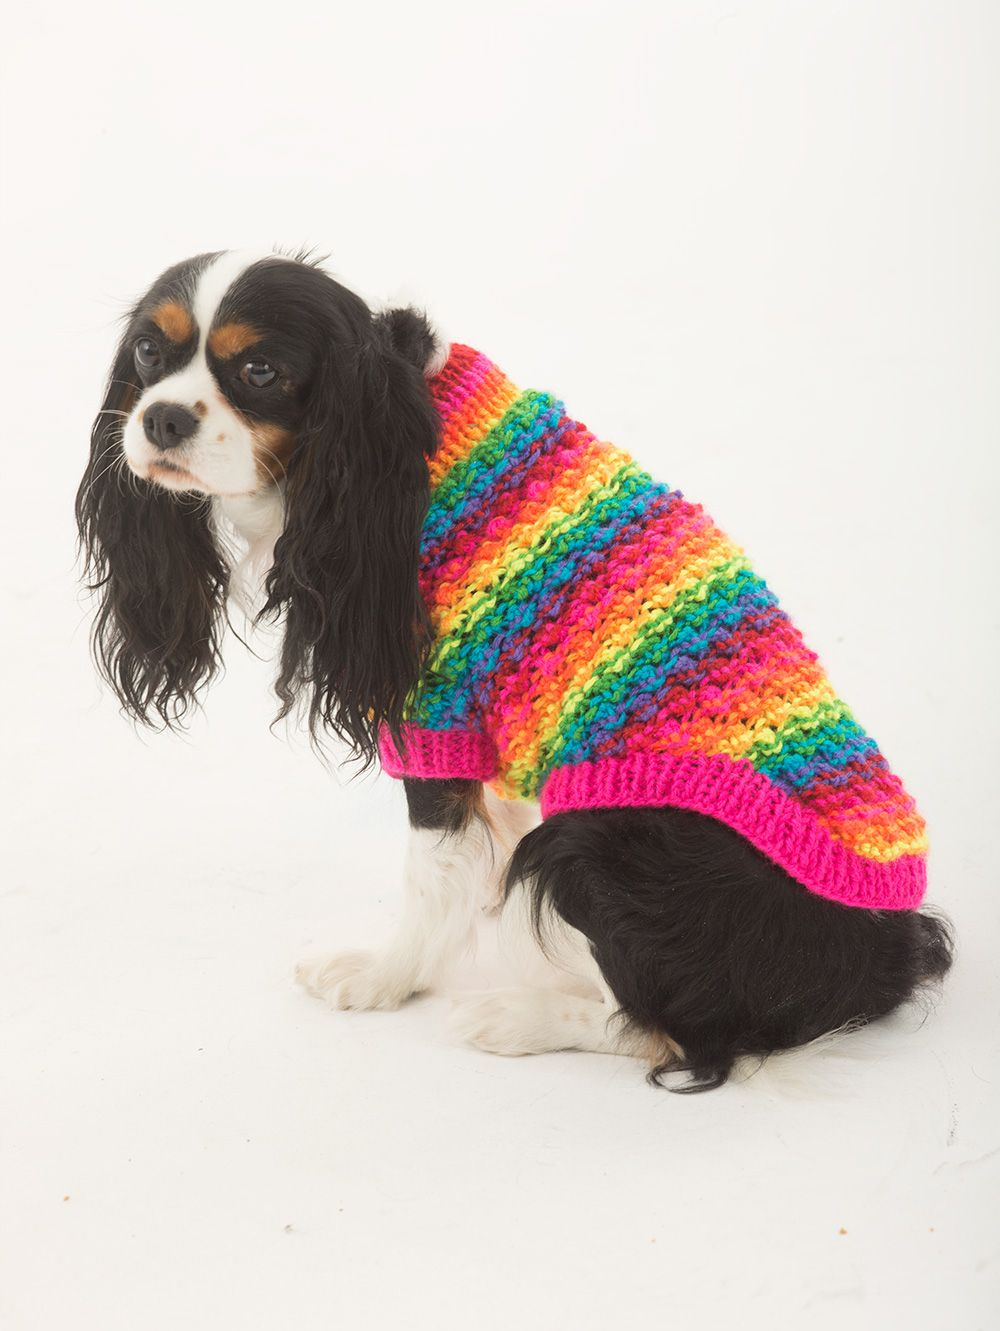 Free knitting pattern l32374 the proud supporter dog sweater lion free knitting pattern l32374 the proud supporter dog sweater lion dt1010fo